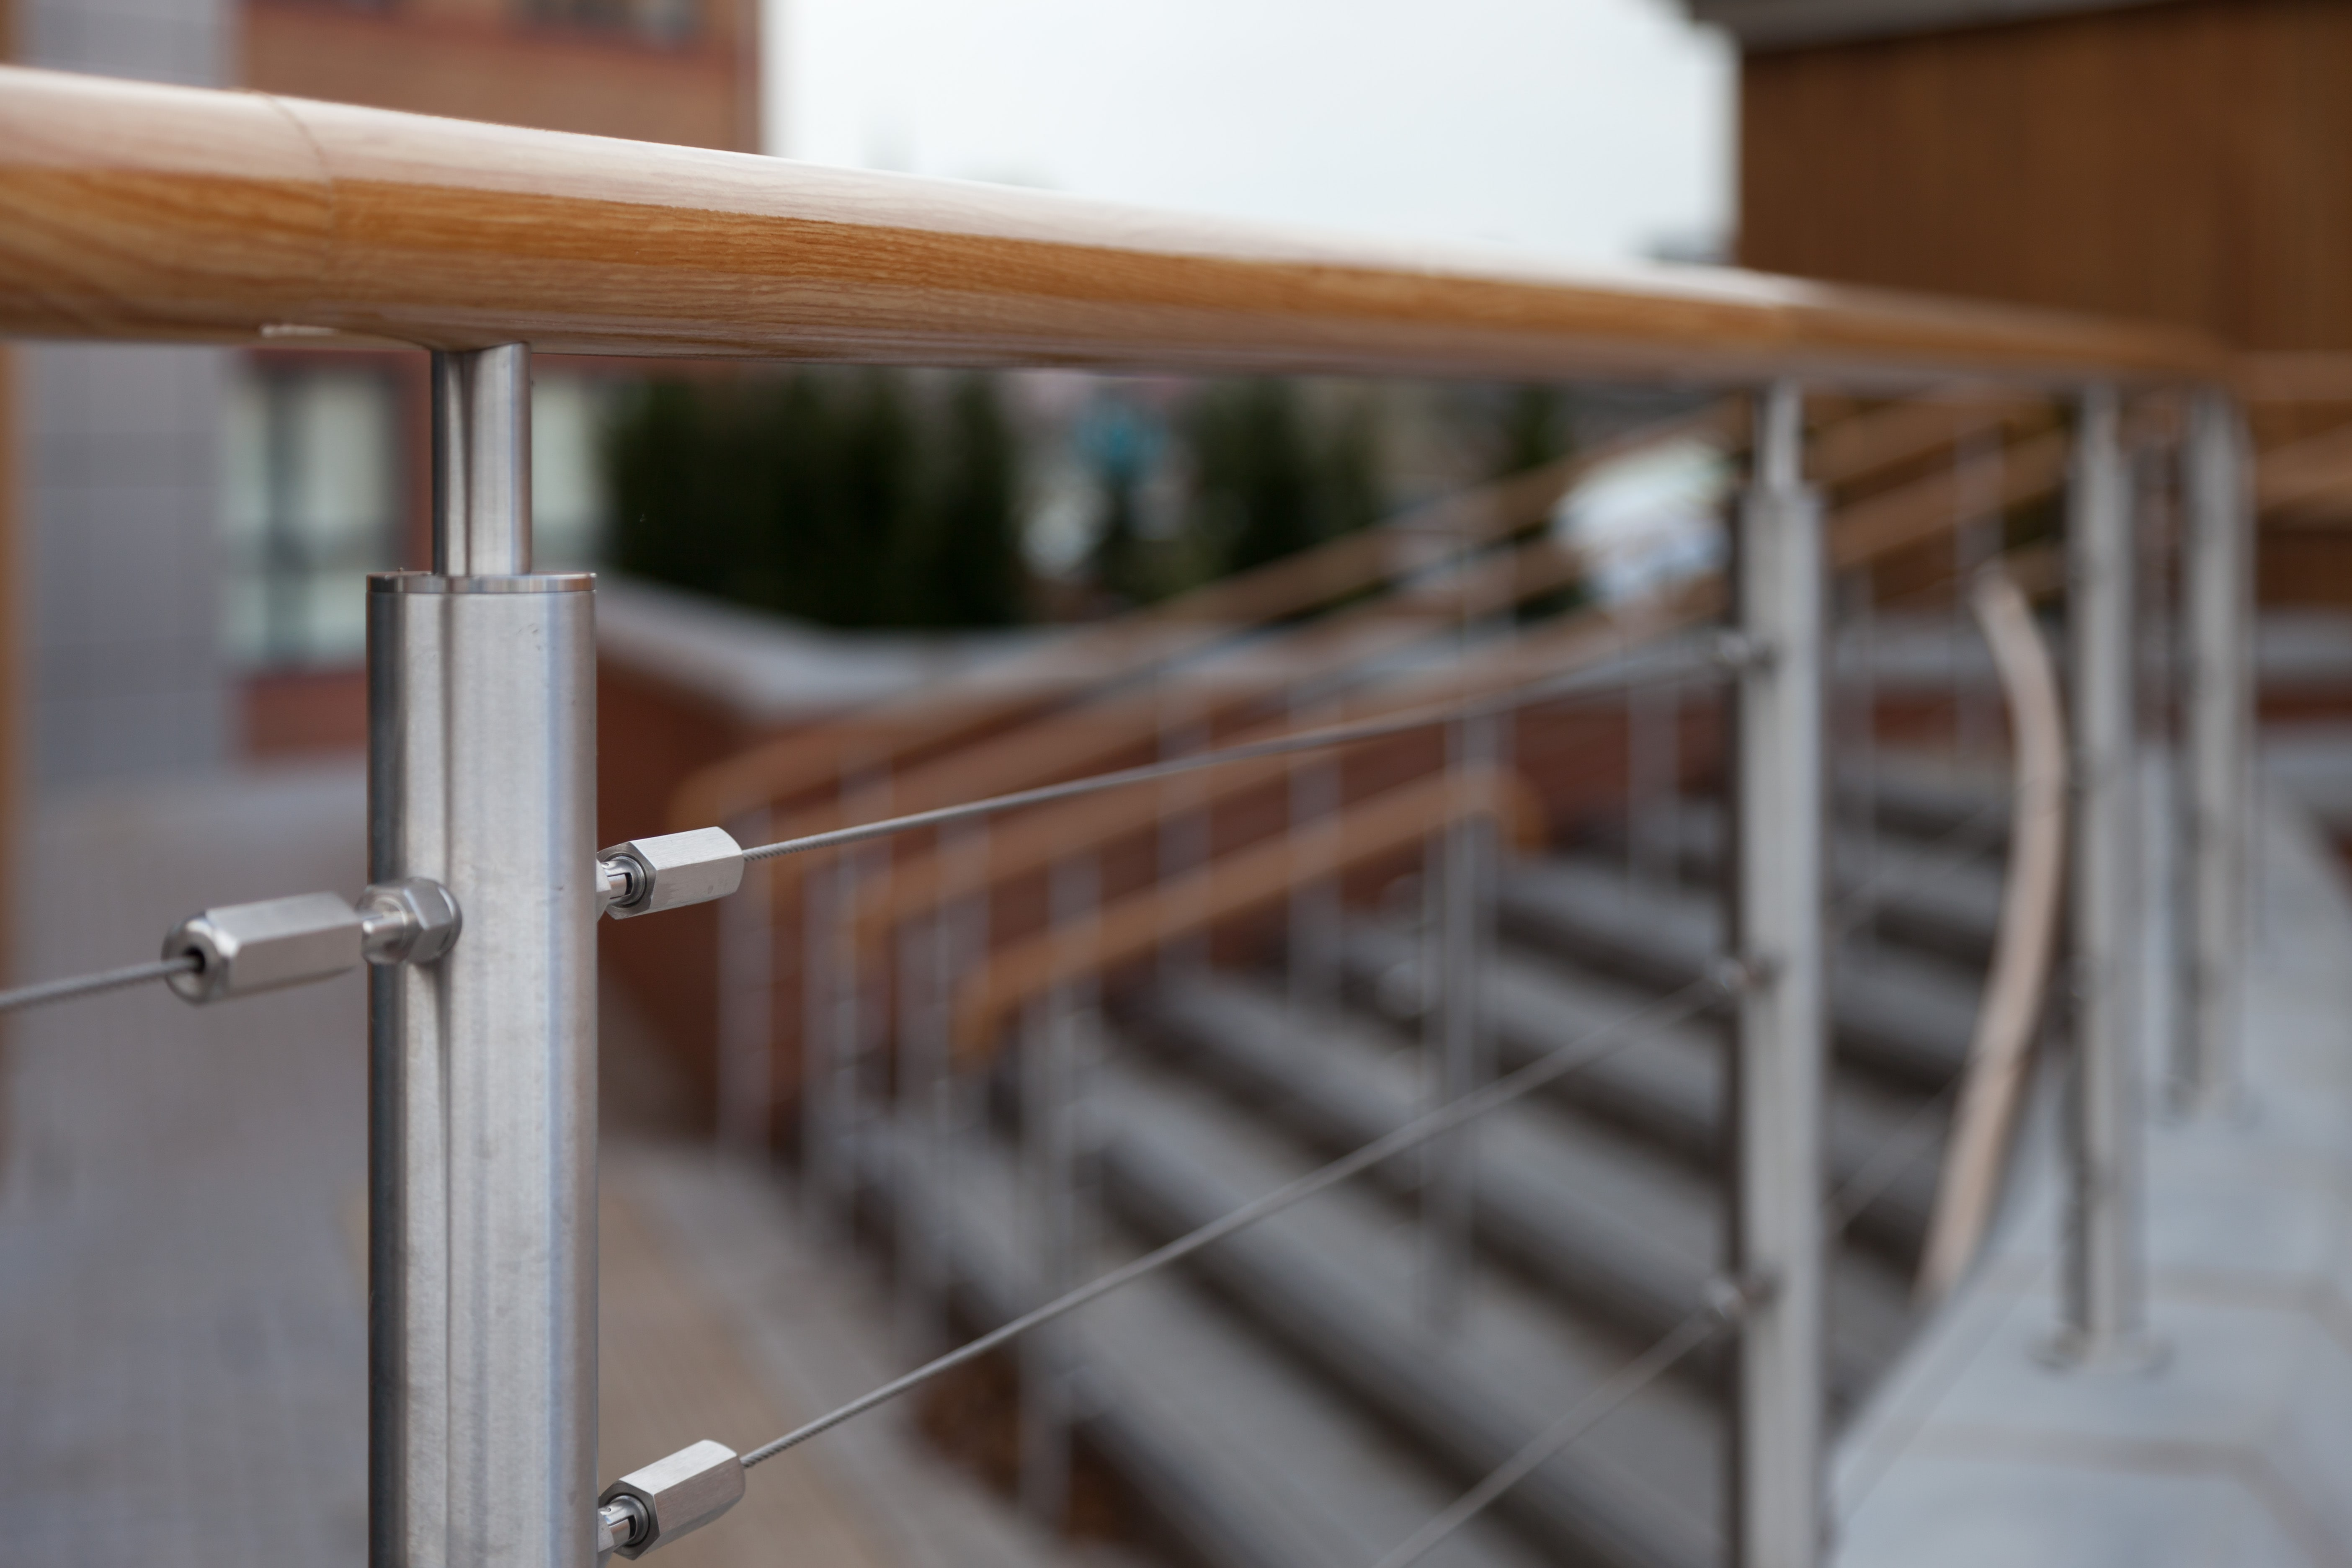 wood effect handrails and balustrade chosen at college. Black Bedroom Furniture Sets. Home Design Ideas